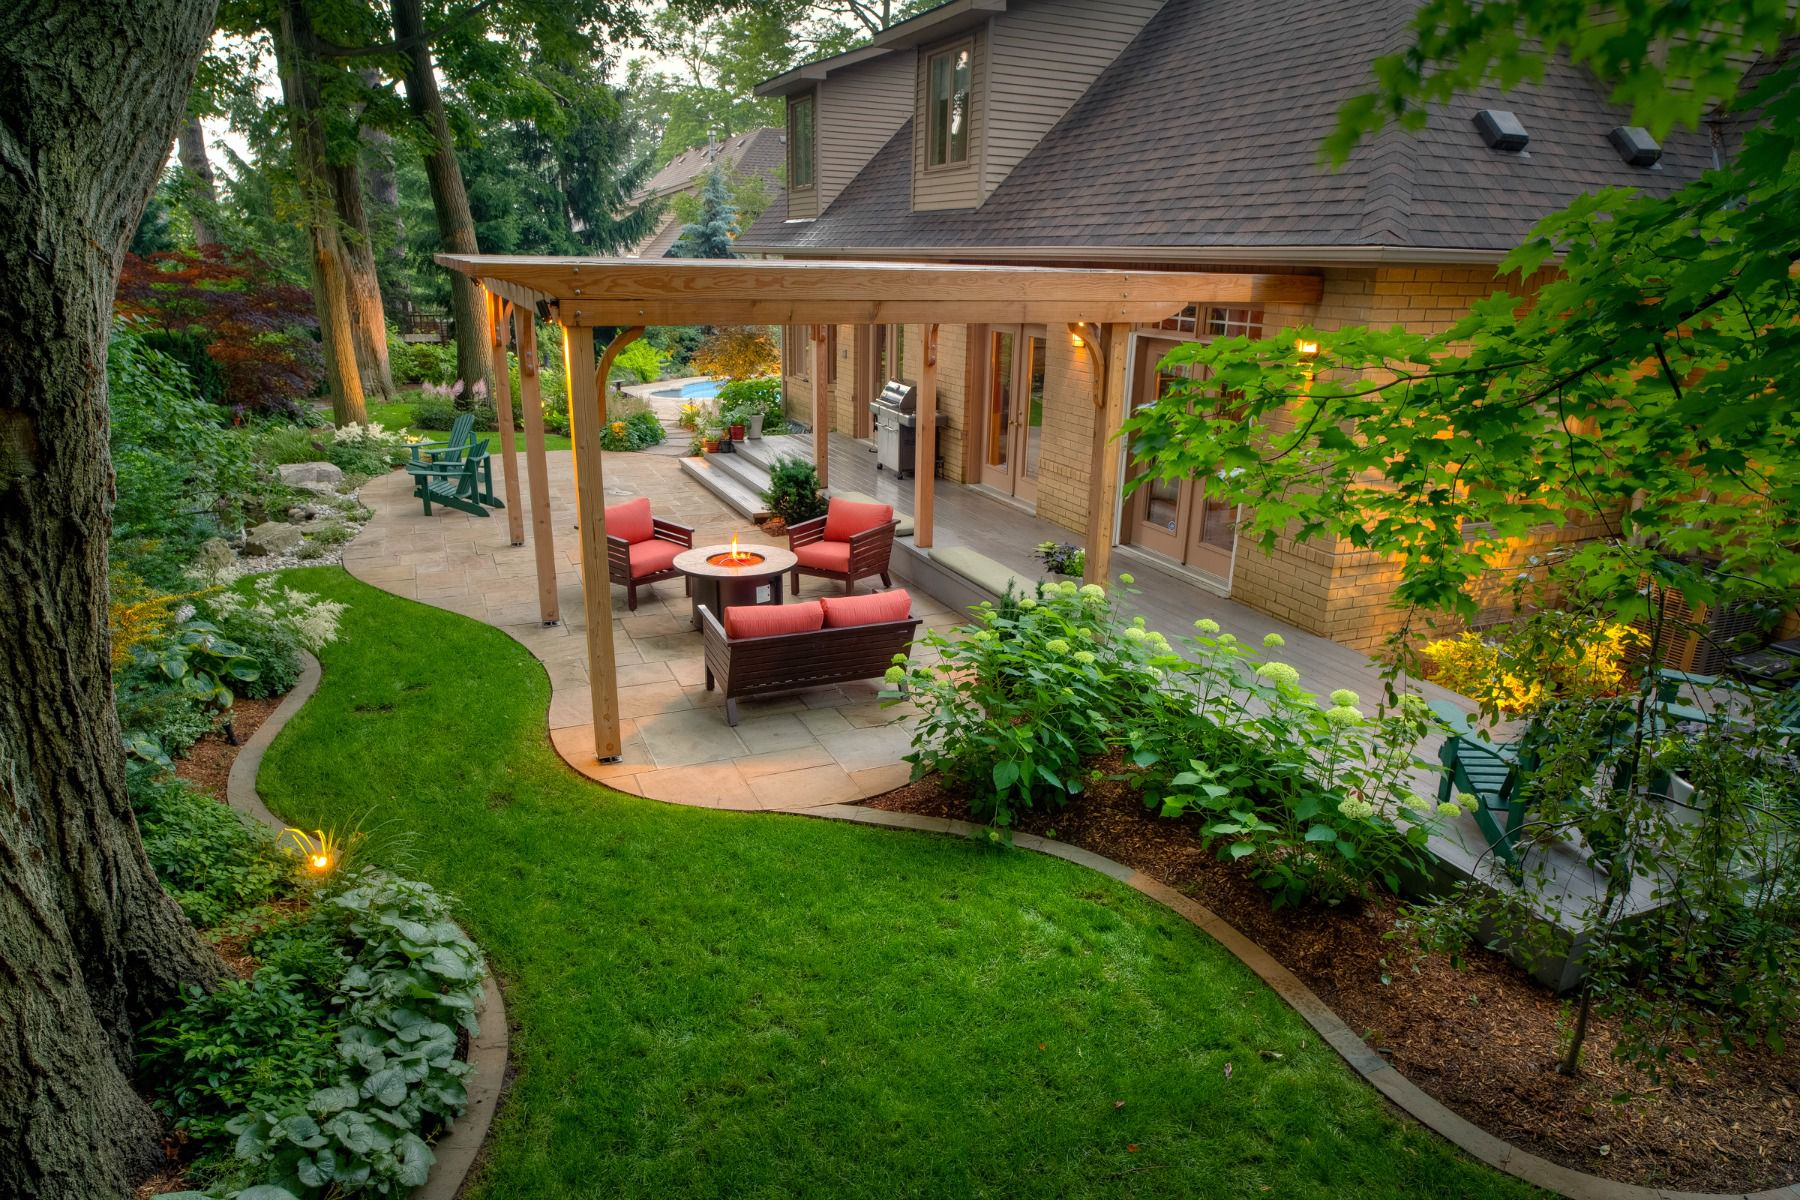 50 Backyard Landscaping Ideas intended for Backyard Pics Landscaping